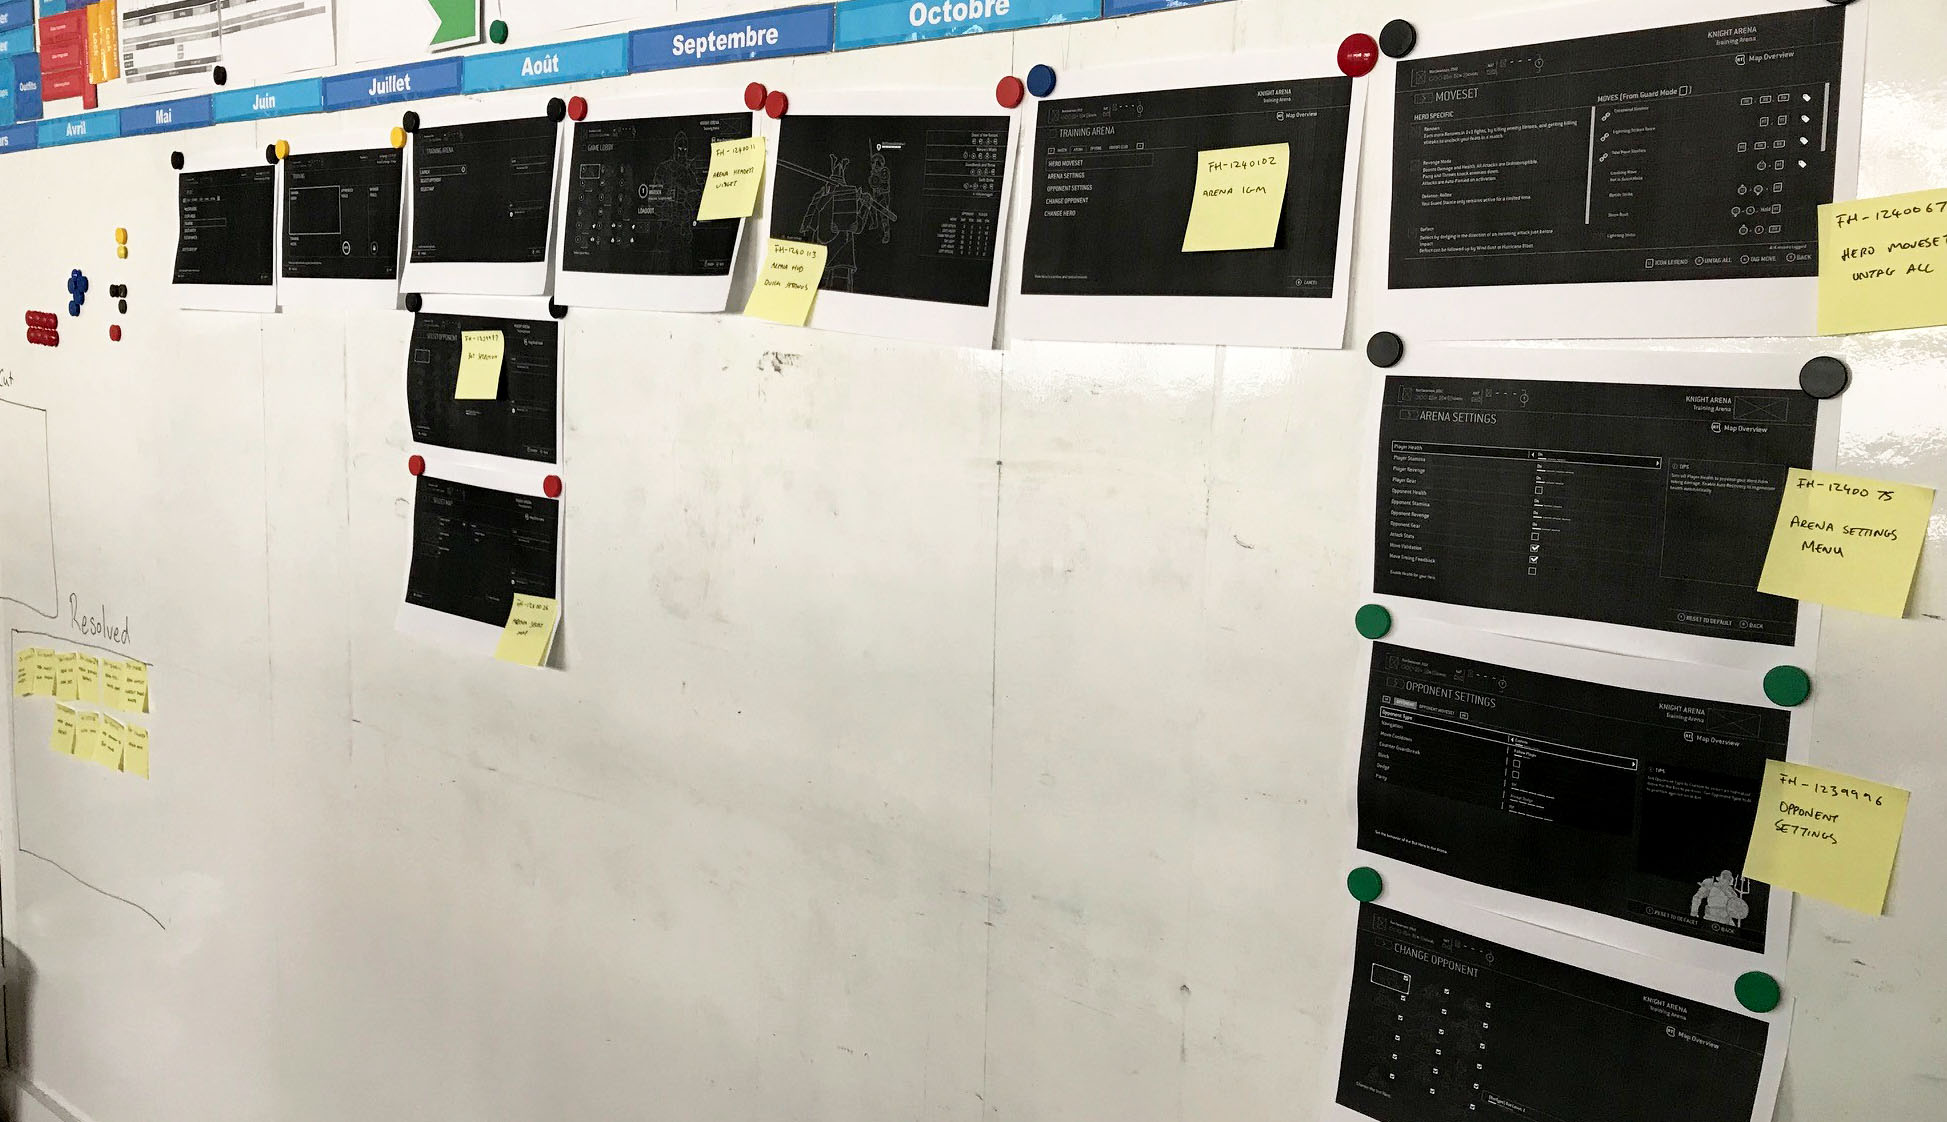 A whiteboard with wireframes attached